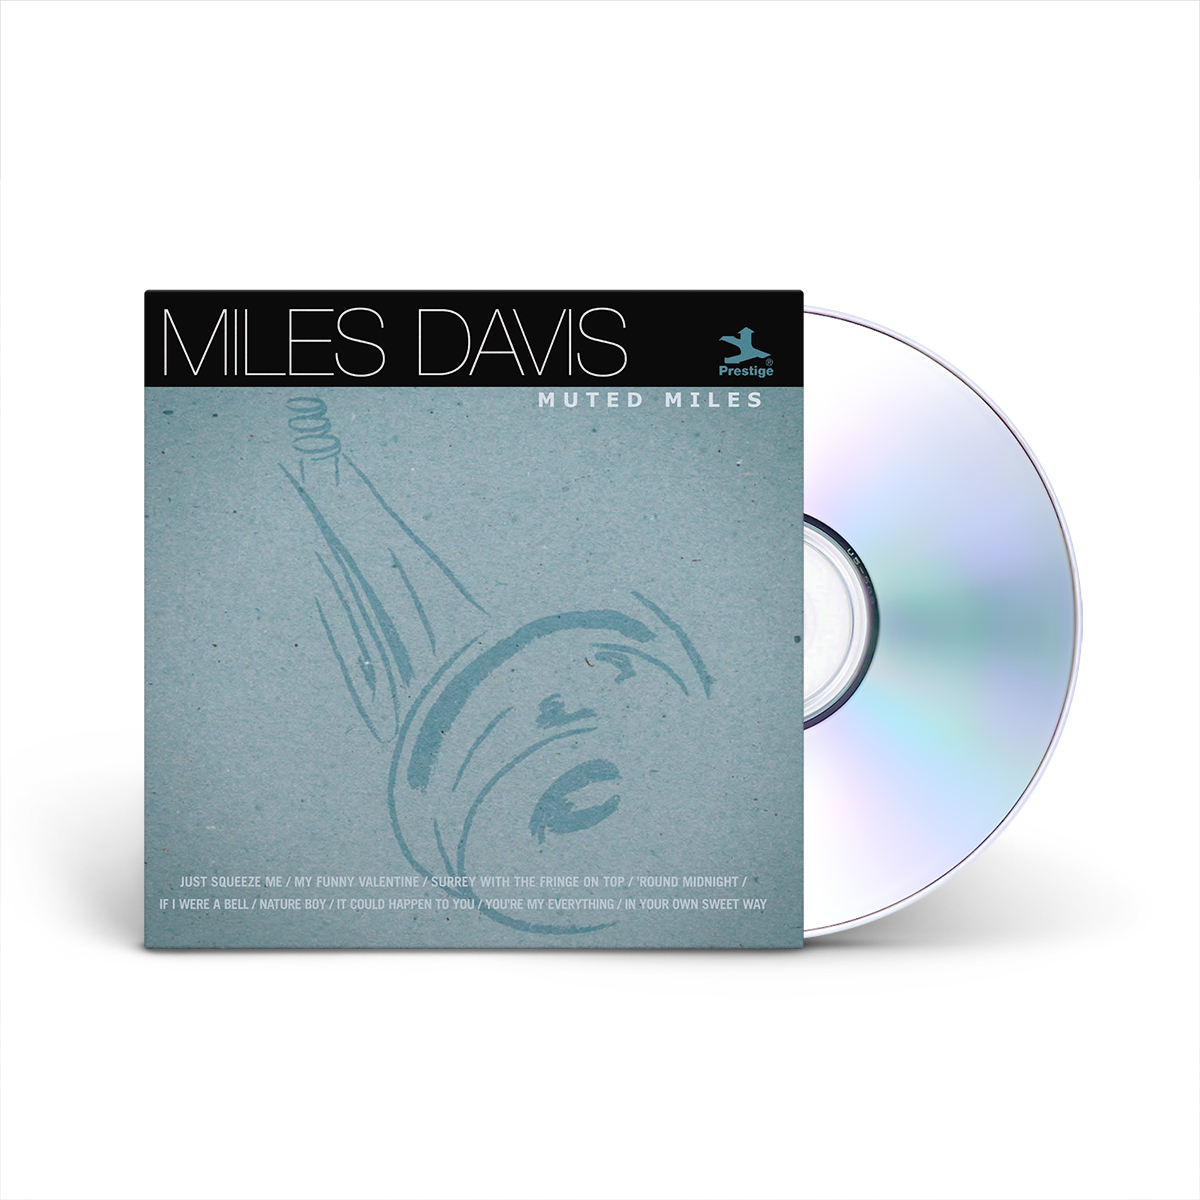 Miles Davis - Muted Miles CD